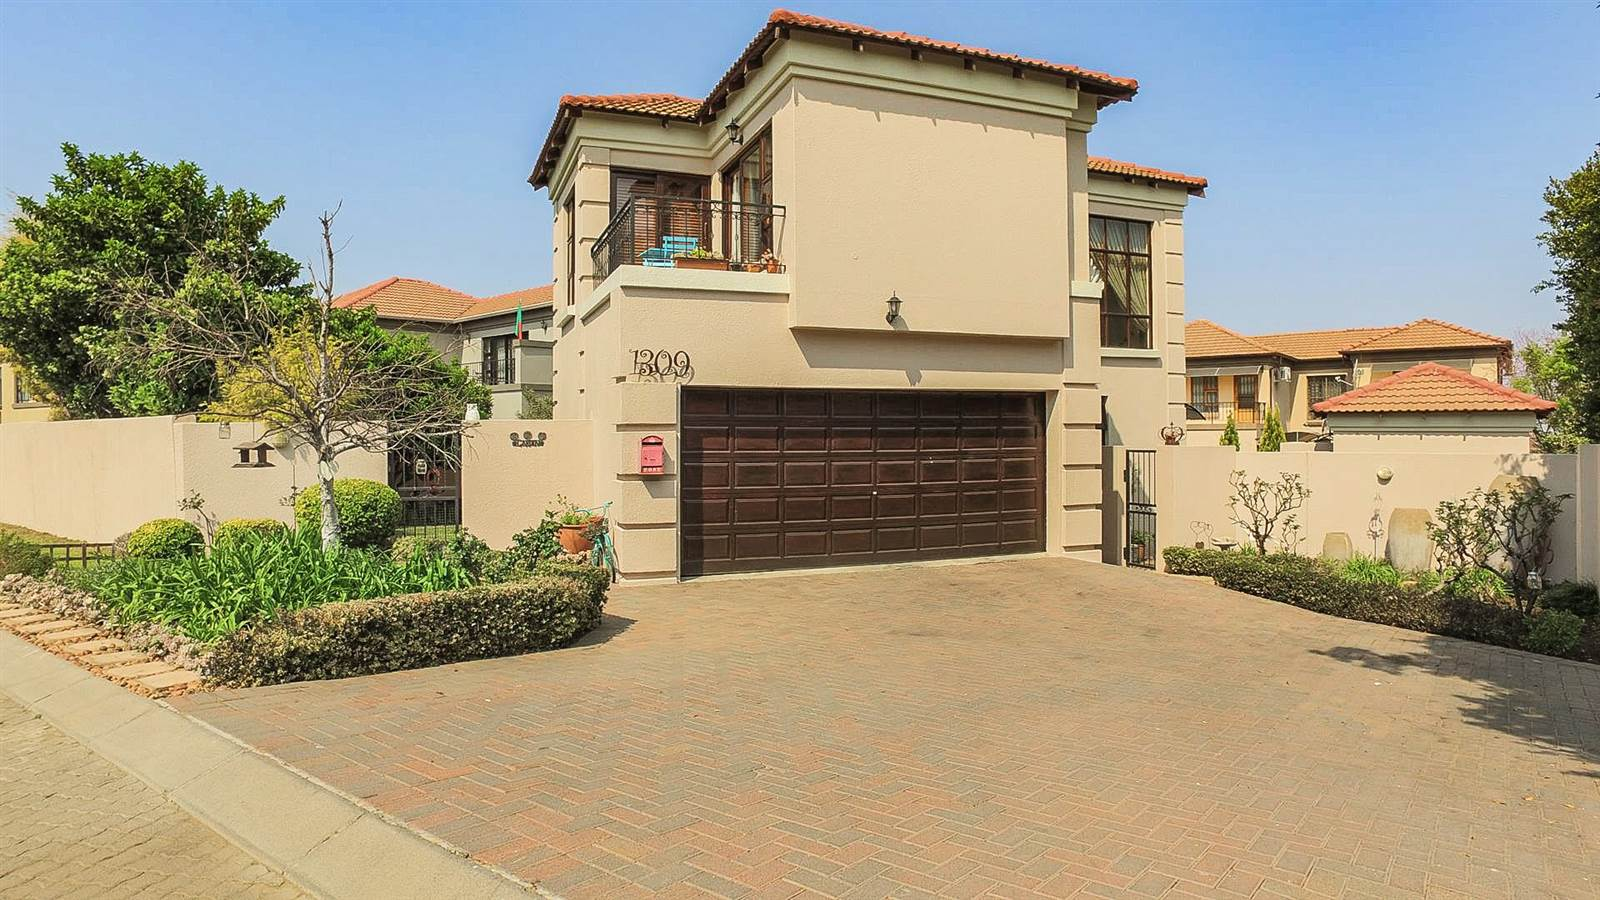 4 Bedroom Townhouse for sale in Mulbarton ENT0067436 : photo#13